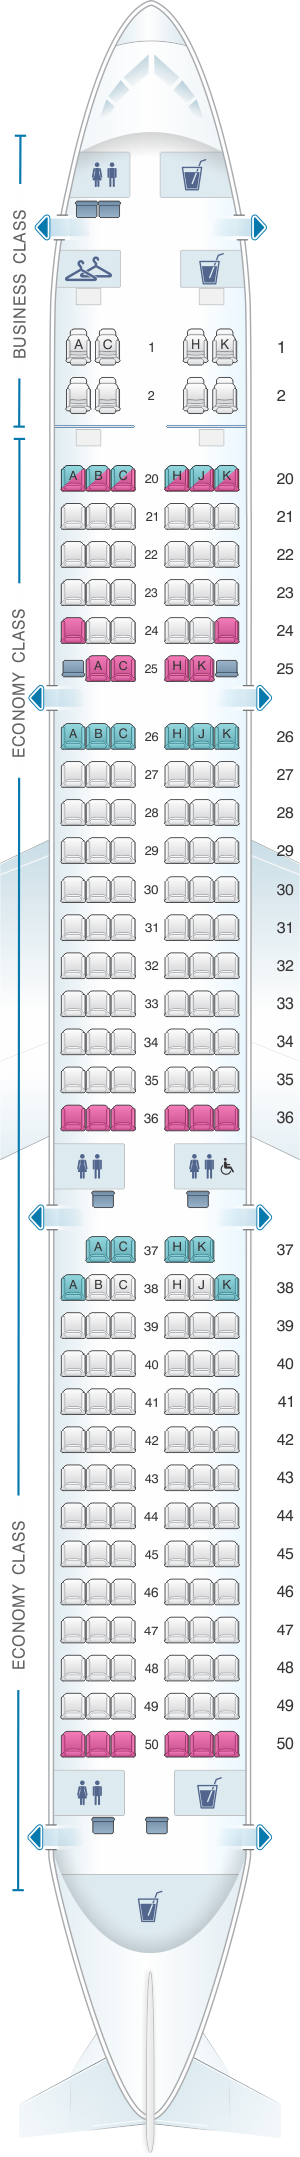 Seat map for EVA Air Airbus A321 200